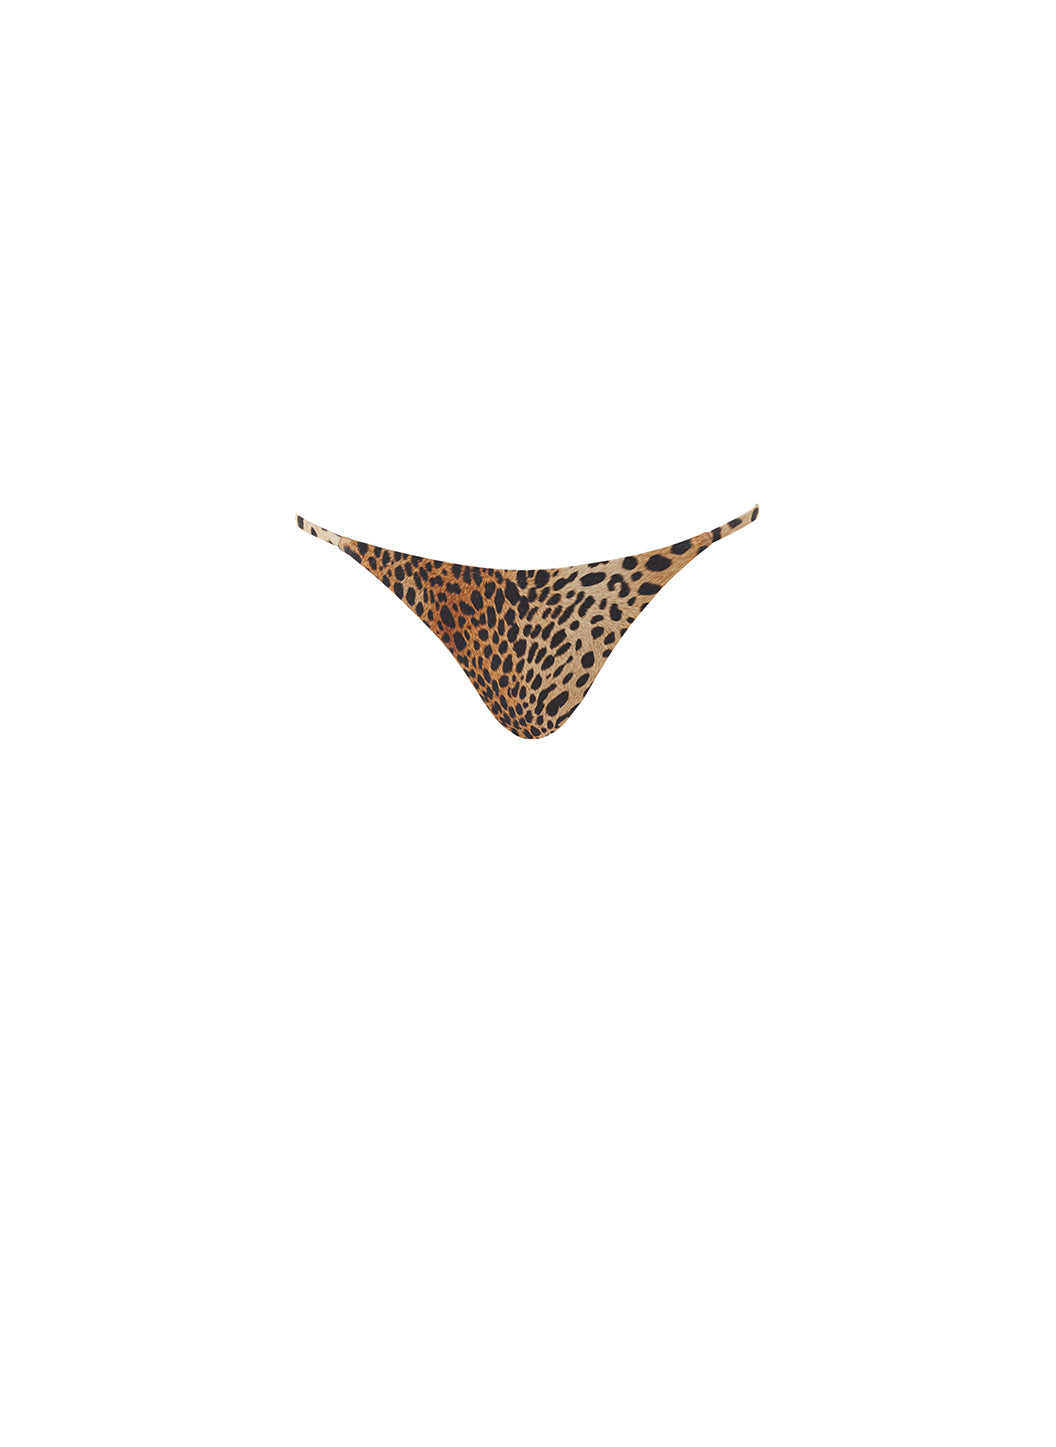 Exclusive St Tropez High Leg Bikini Bottoms Cheetah - Melissa Odabash Swimwear